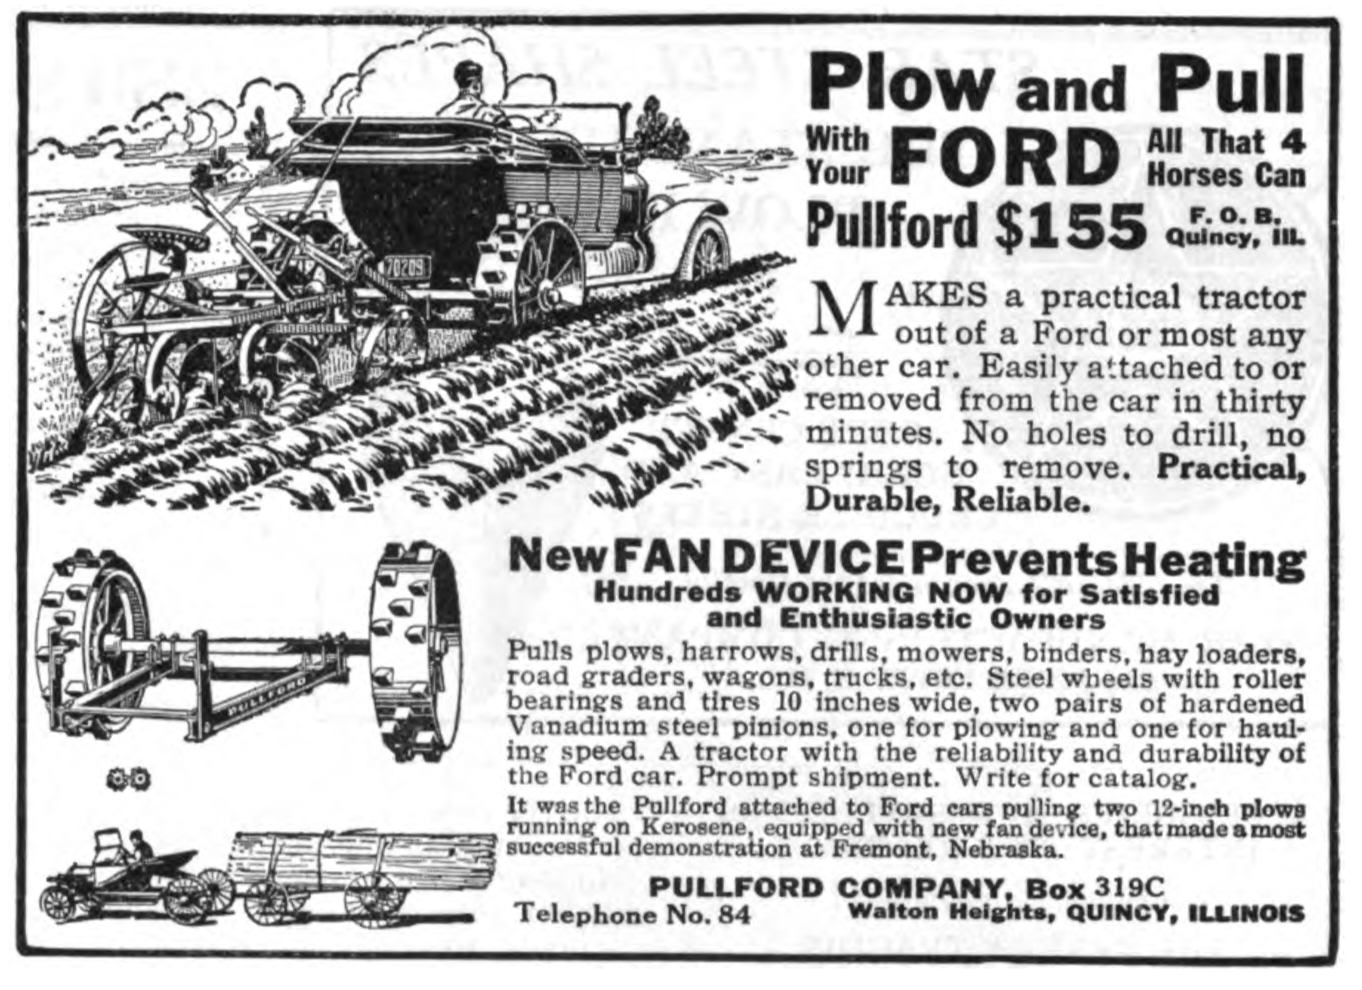 1918 Pullford autototractor conversion advertisement